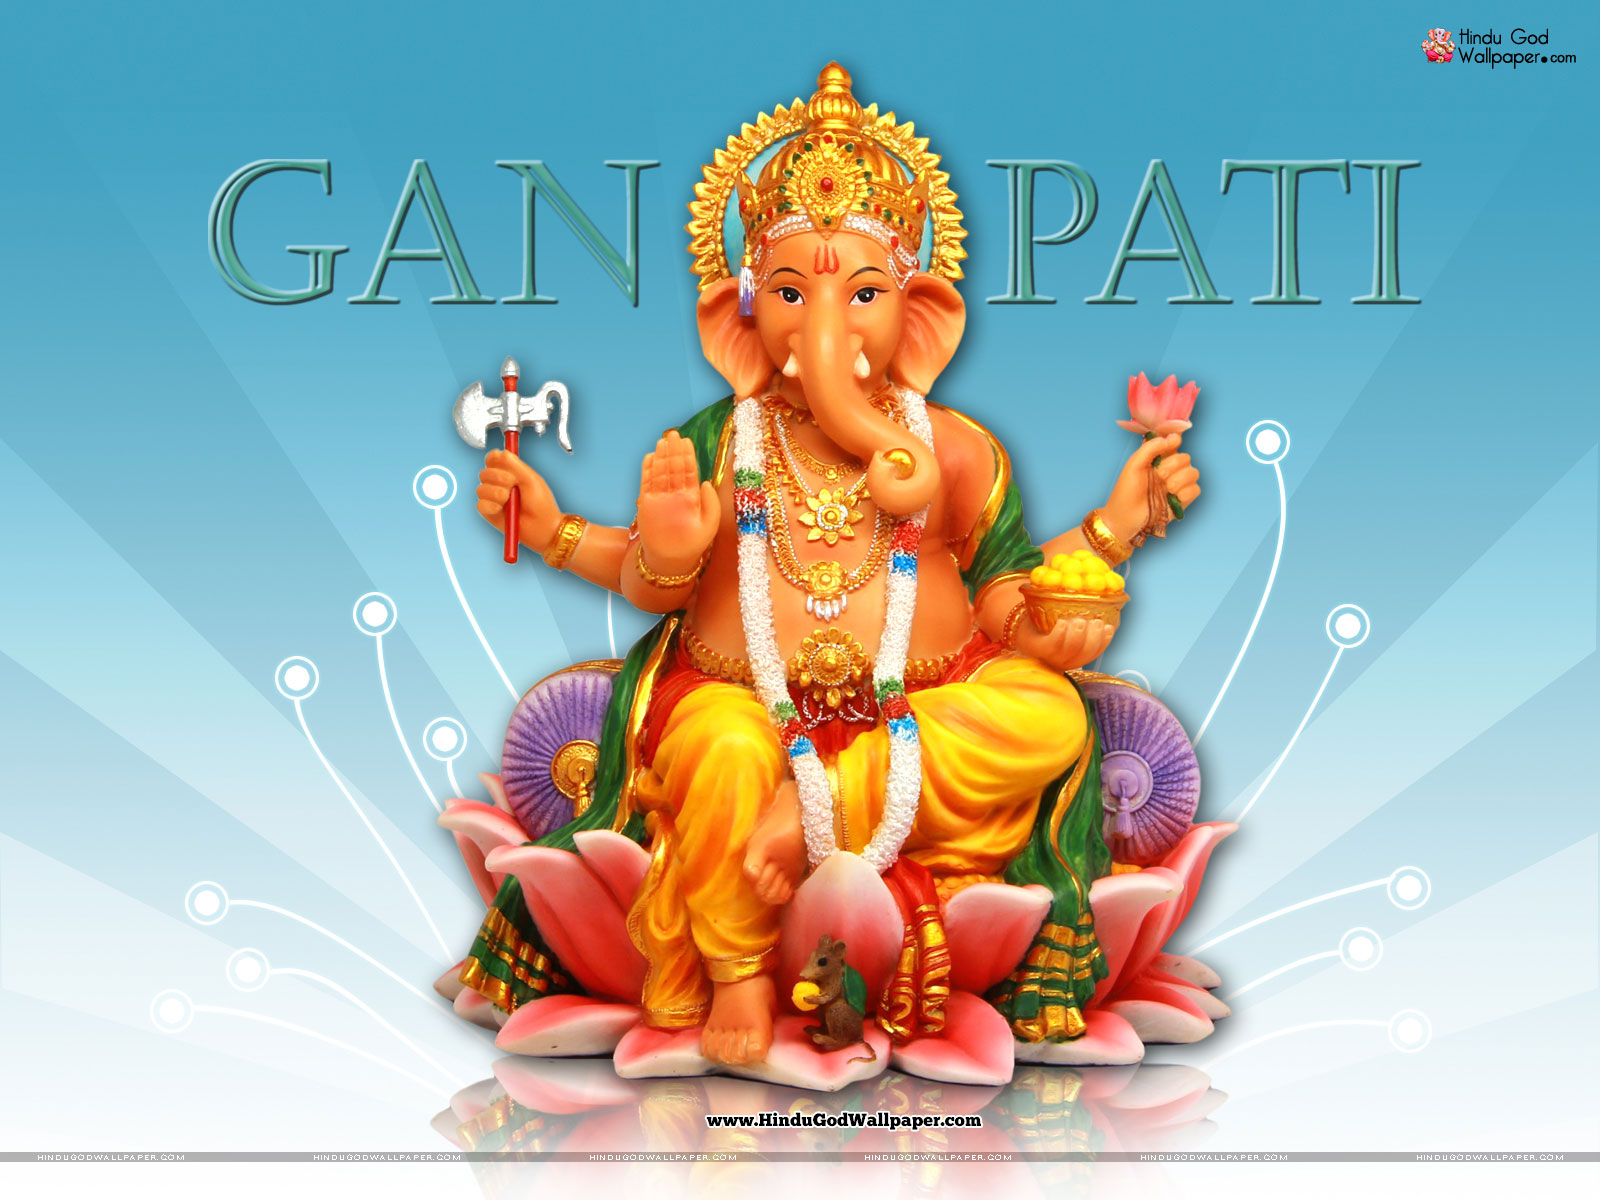 Must see Wallpaper High Quality Lord Ganesha - 2277_lord-ganesha-wallpaper-hd-15  Gallery_674785.jpg